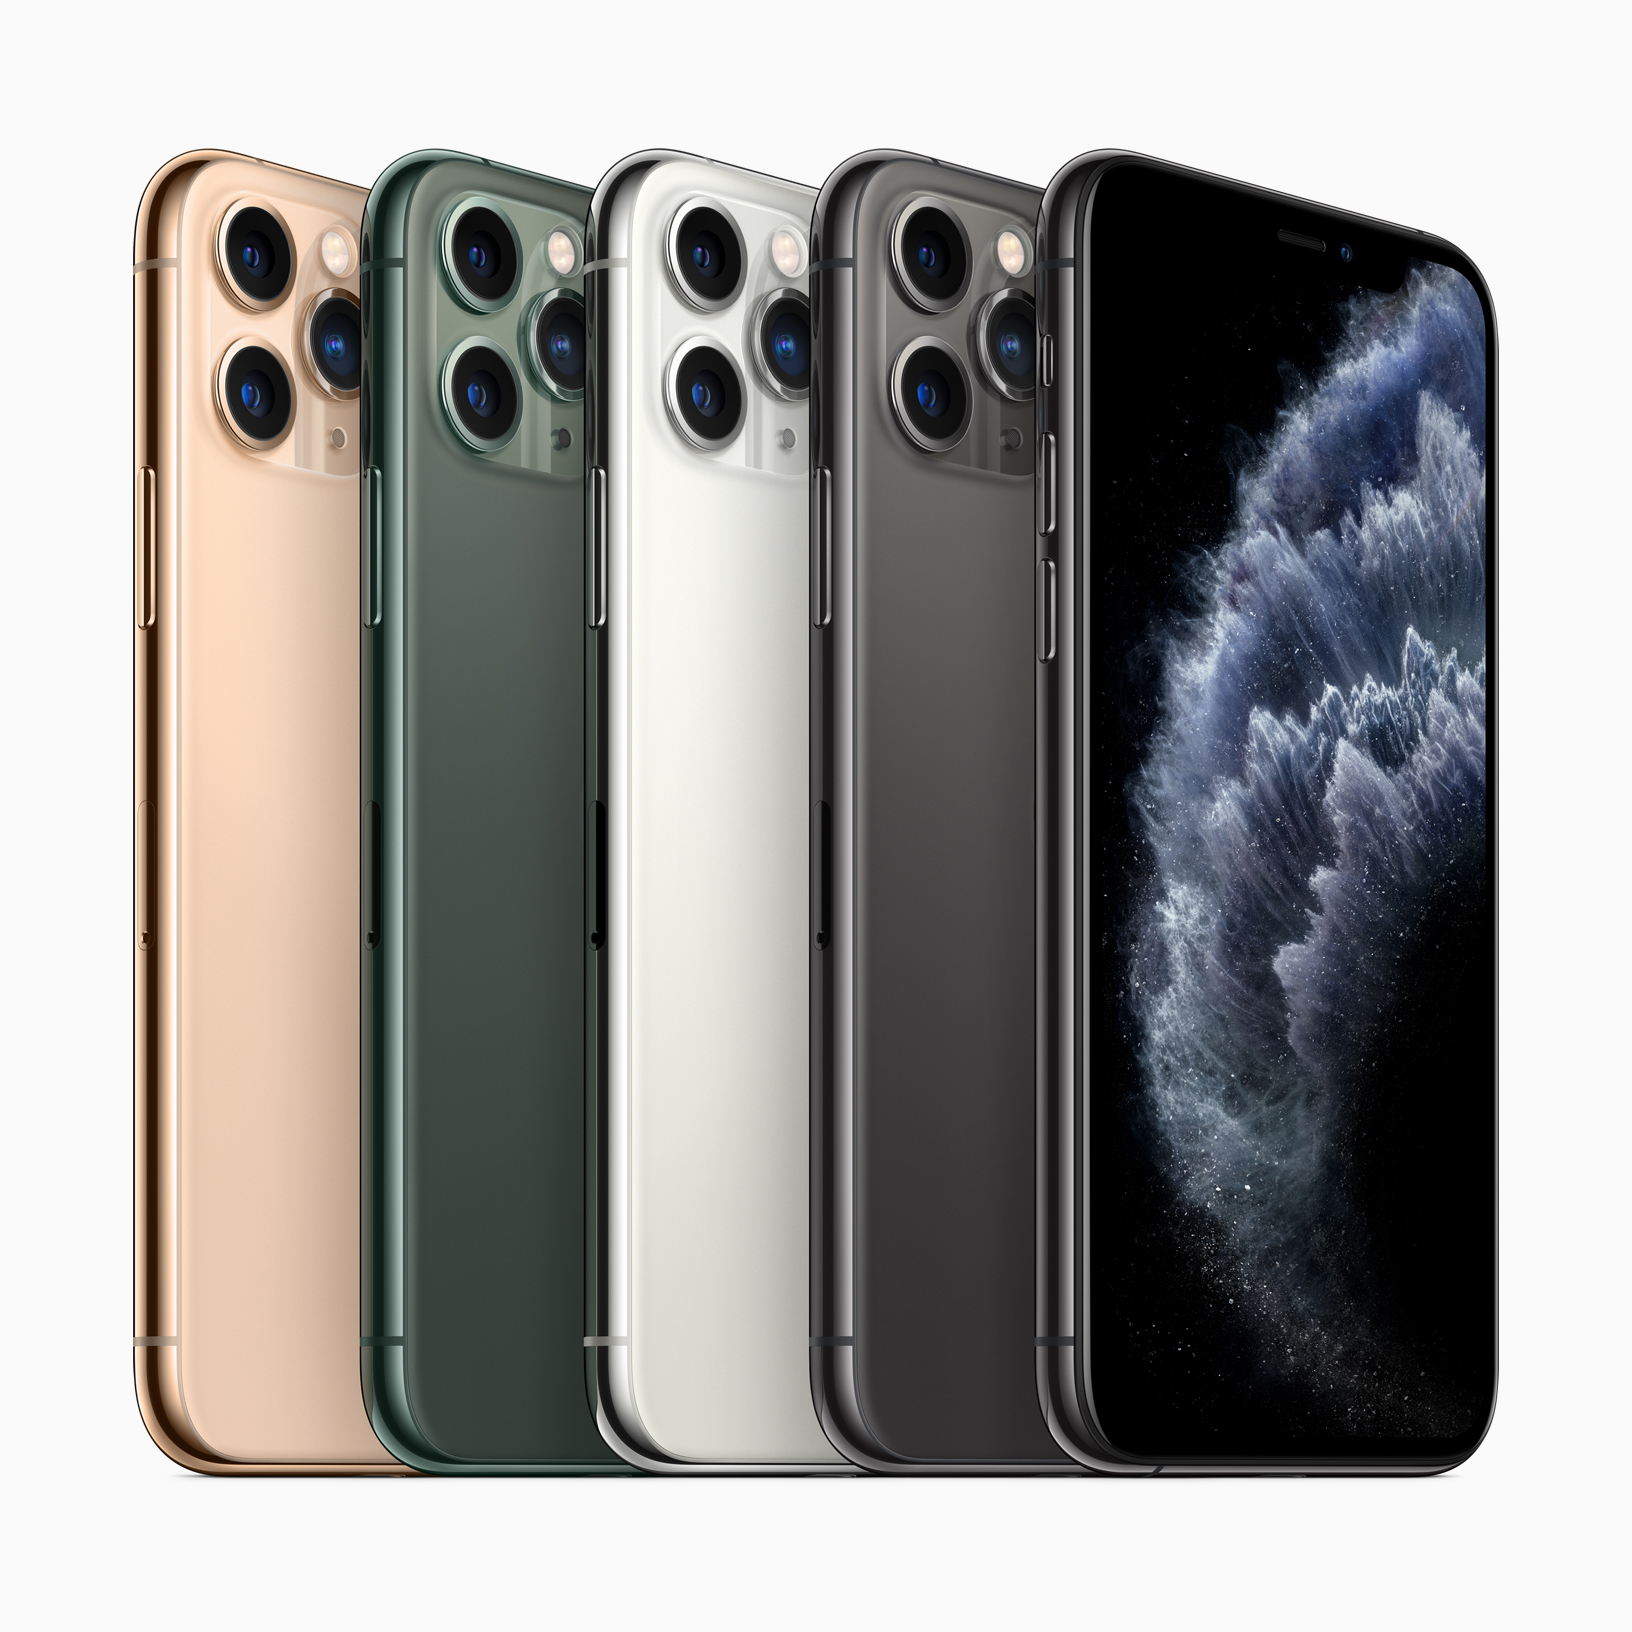 iPhone 11 Pro and iPhone Pro 11 Max